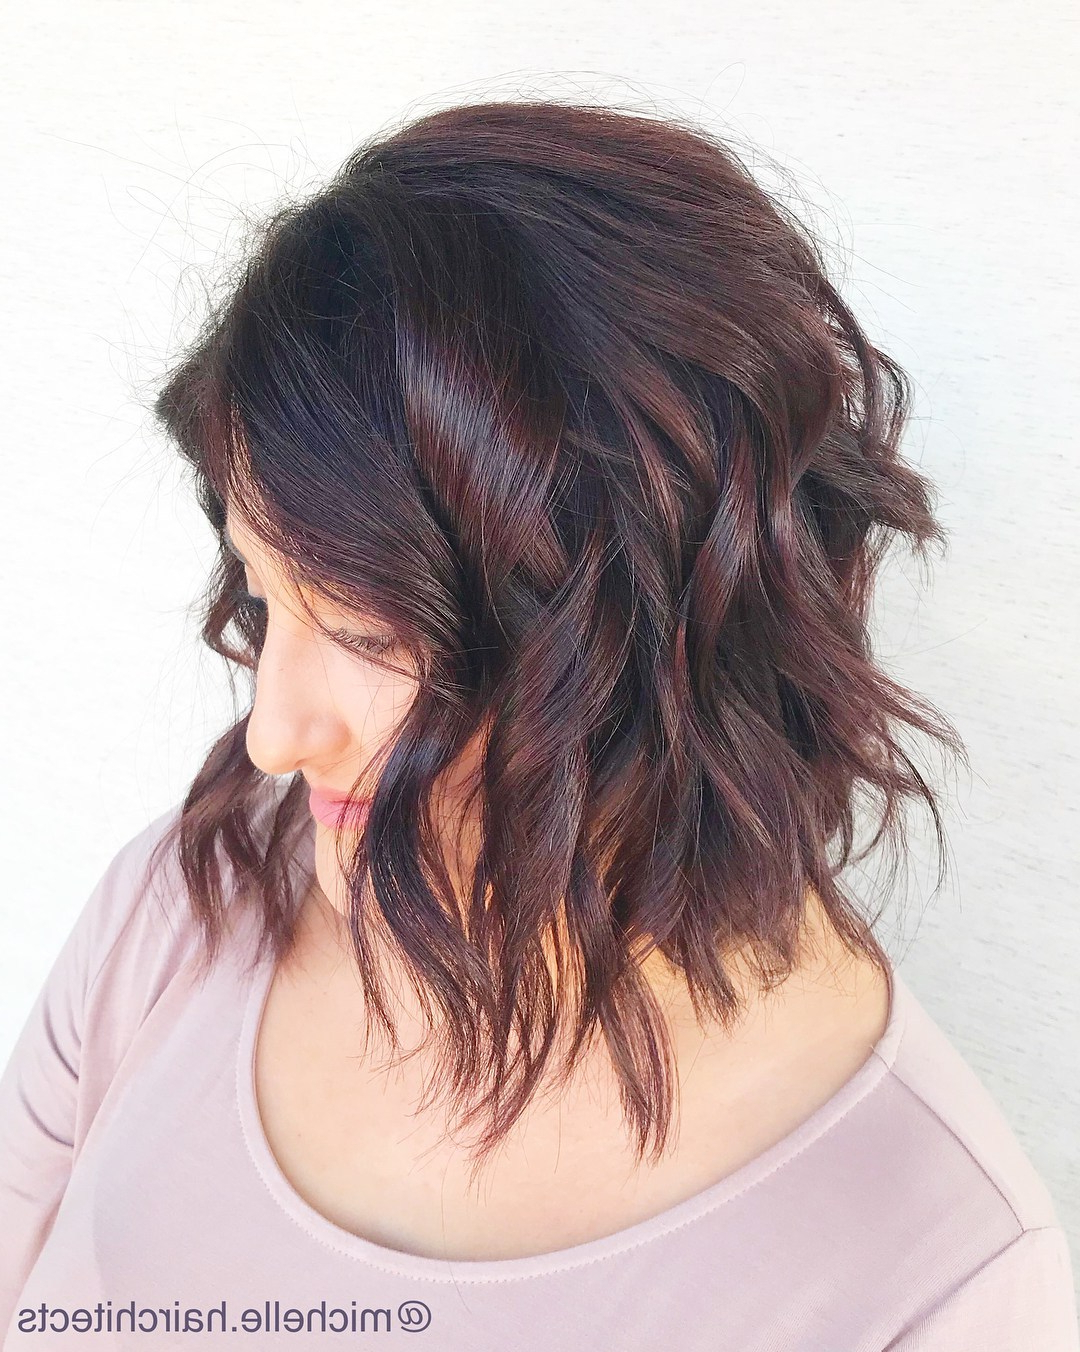 50 Hairstyles For Thick Wavy Hair You Will Adore – Hair Throughout Disconnected Shaggy Brunette Bob Hairstyles (View 9 of 20)